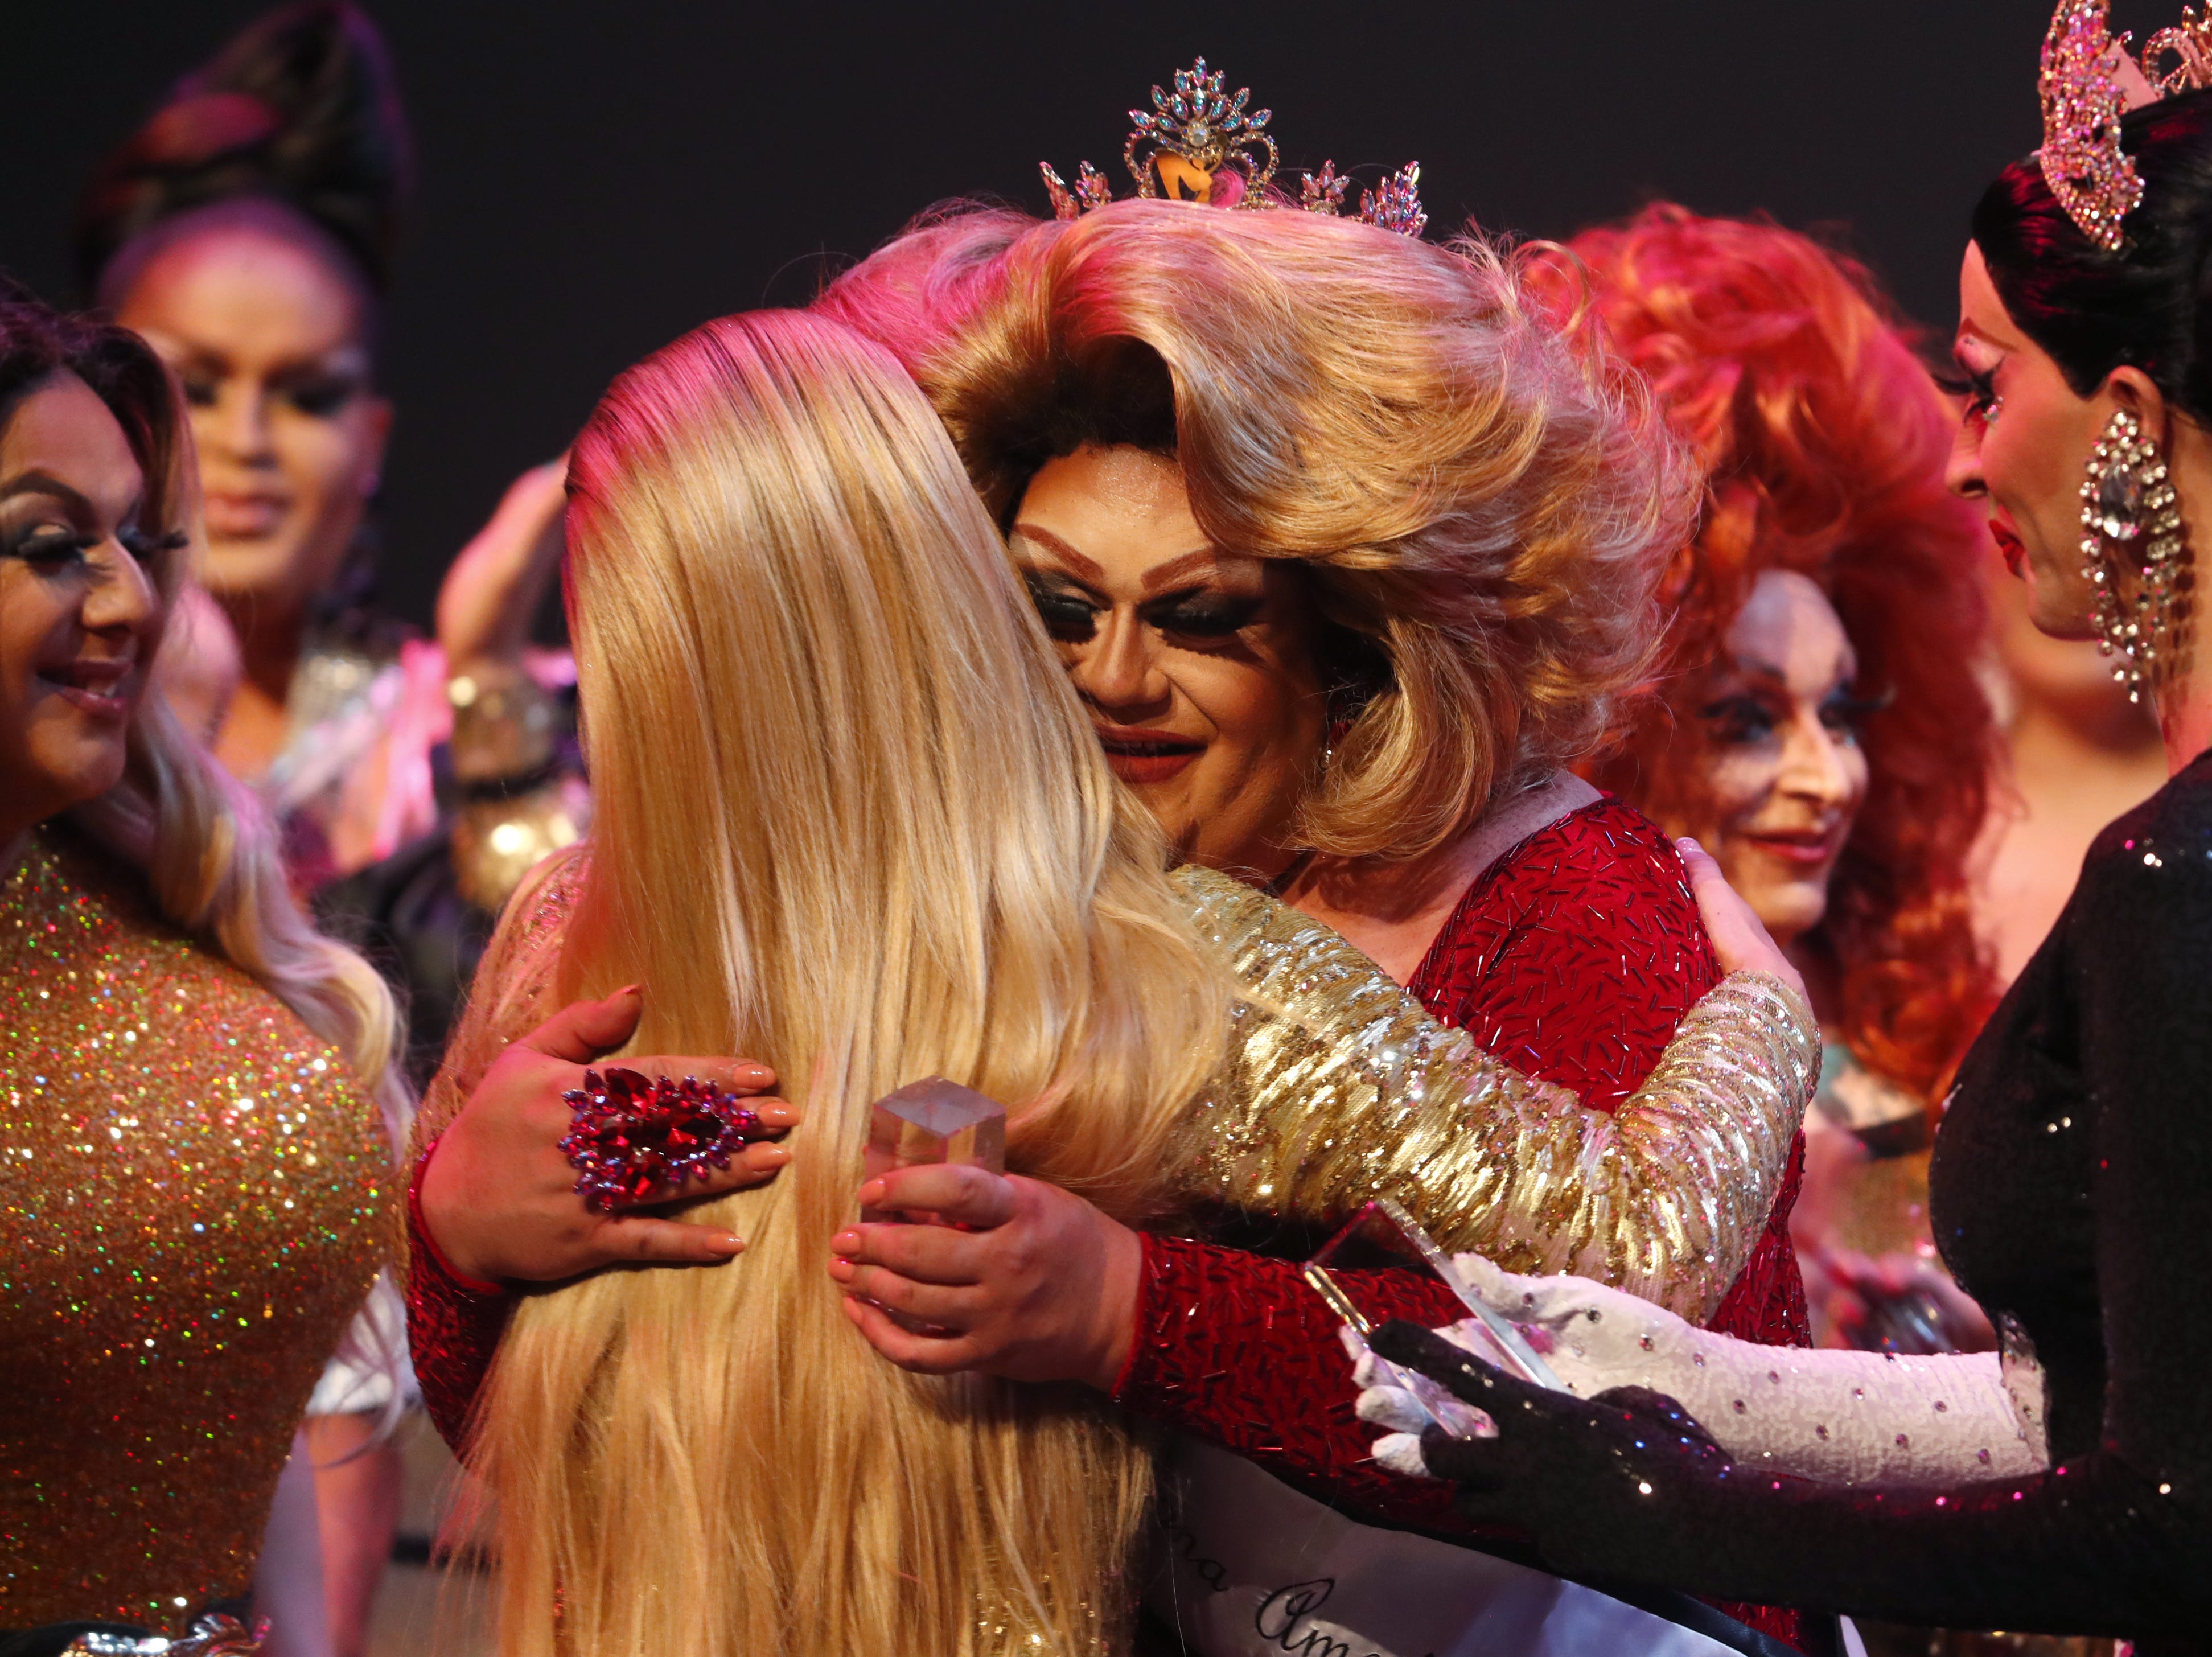 Espressa Grande receives hugs after winning the Miss Gay Arizona America pageant 2019 at Tempe Center for the Arts on May 11, 2019.